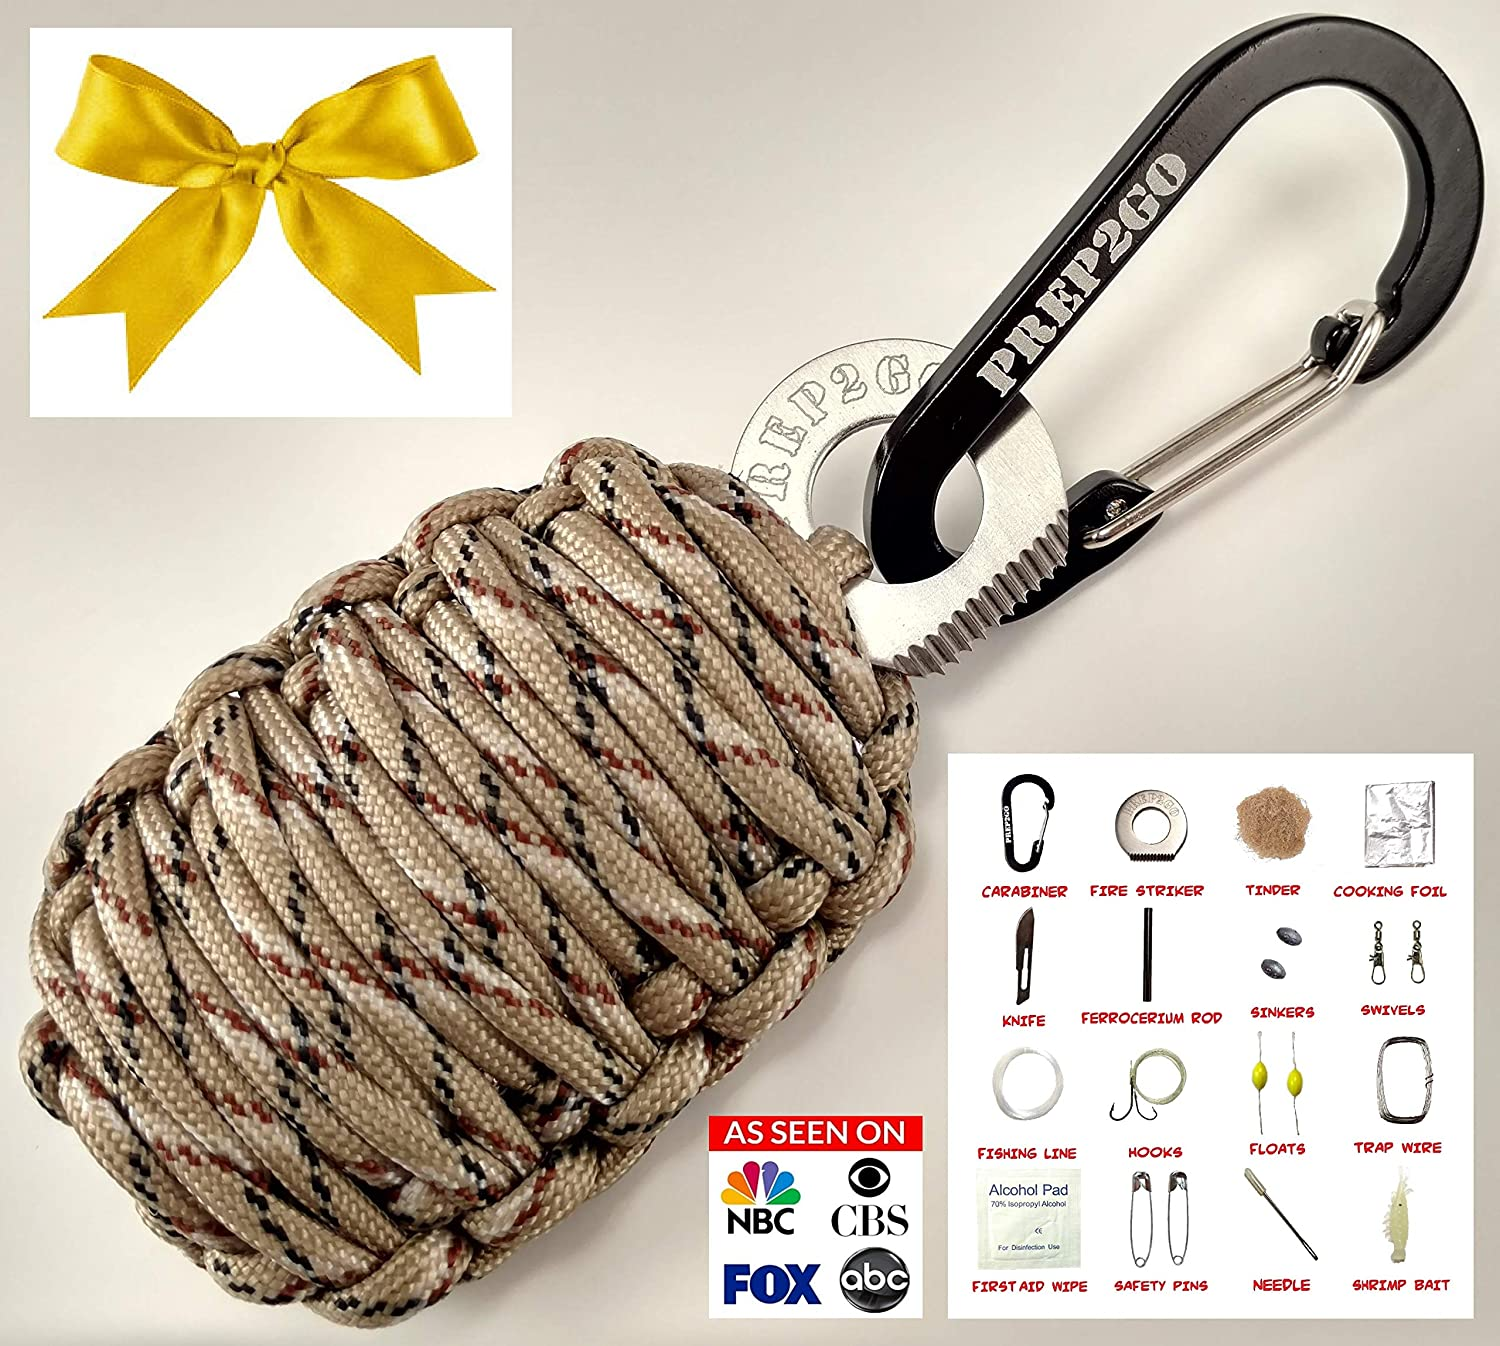 PREP2GO Paracord Survival Grenade (24pc) Keychain-Military Grade Prepper  Emergency Gear-Cool Outdoorsman Camping Hunting Gadget Gift-Moms Feel Safe!